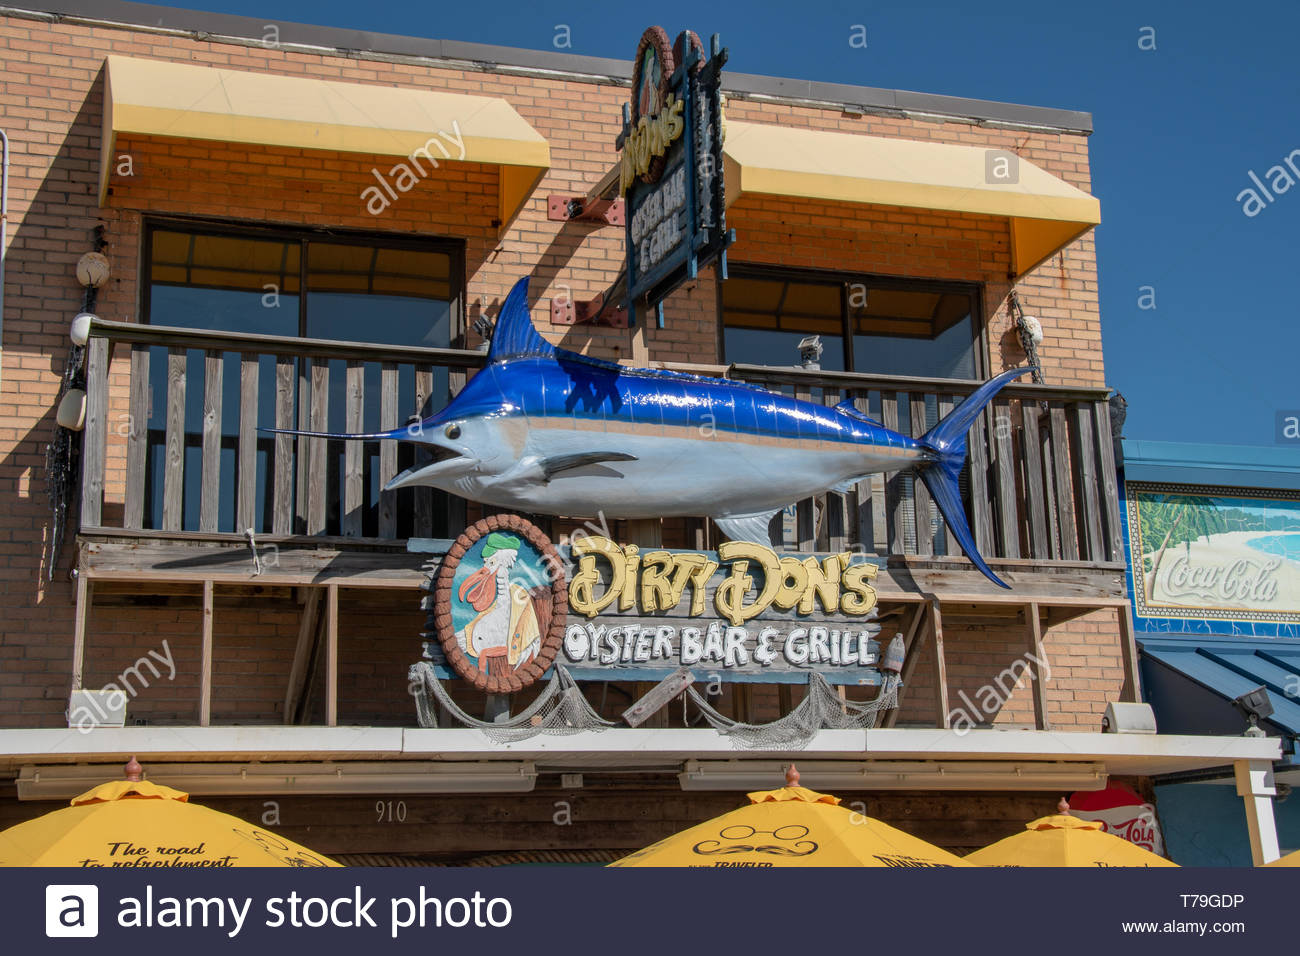 Dirty Don's Oyster Bar & Grill, N Myrtle Beach Sc - Stock Image